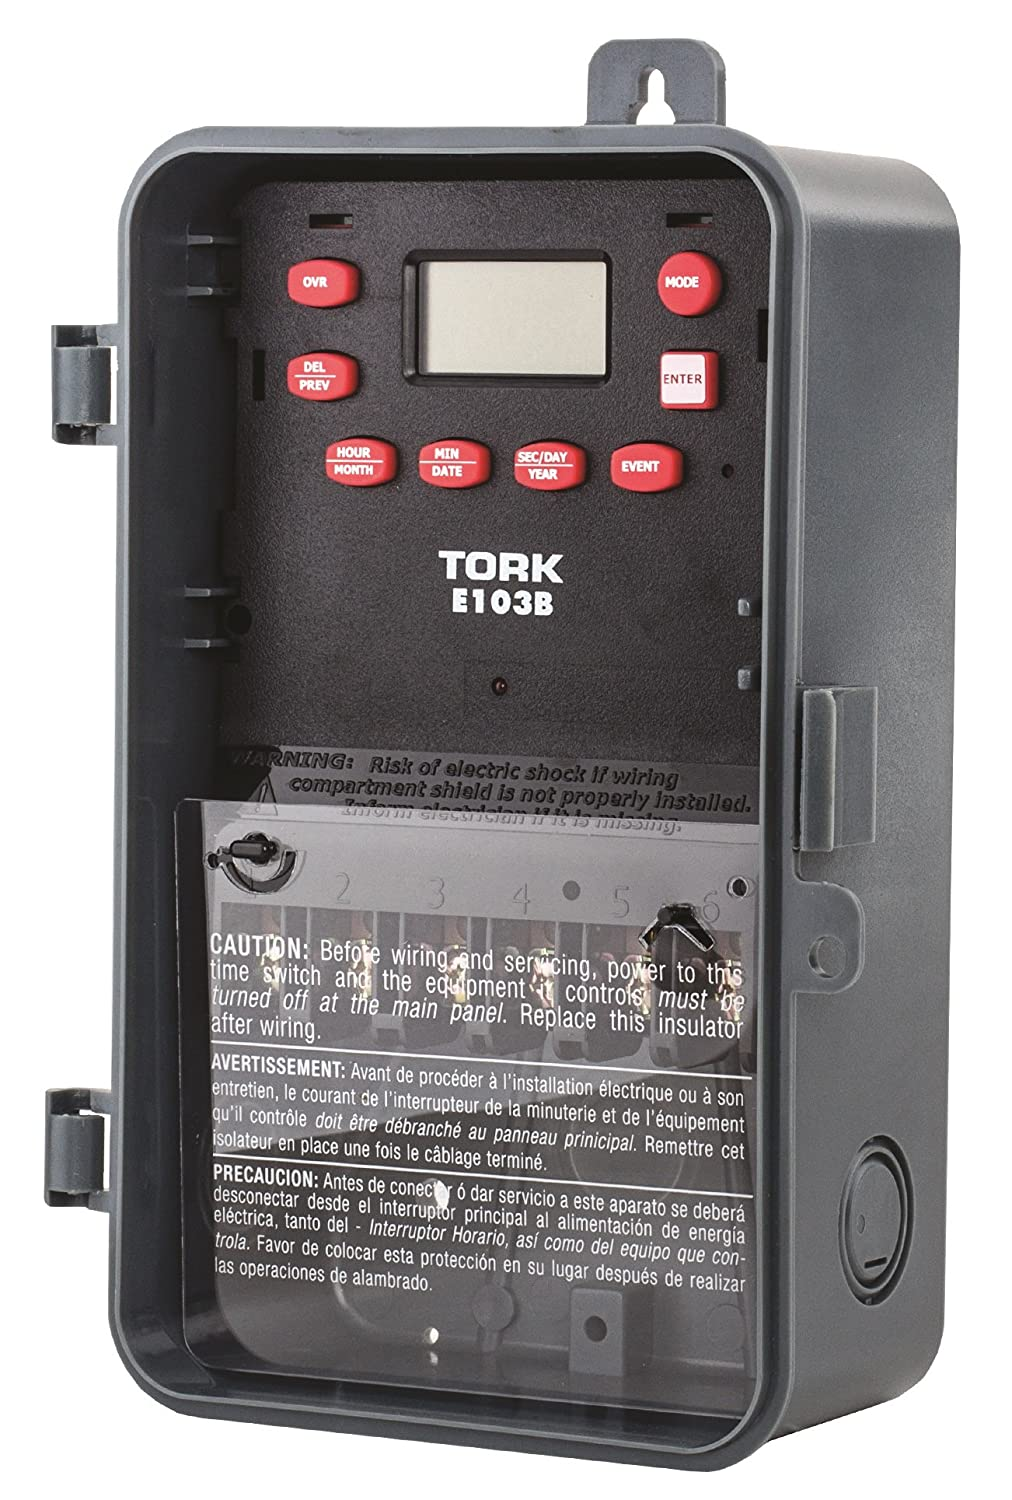 81yVfENHC1L._SL1500_ multipurpose control 24 hour time switch, 120 277 vac input supply tork e103b wiring diagram at pacquiaovsvargaslive.co